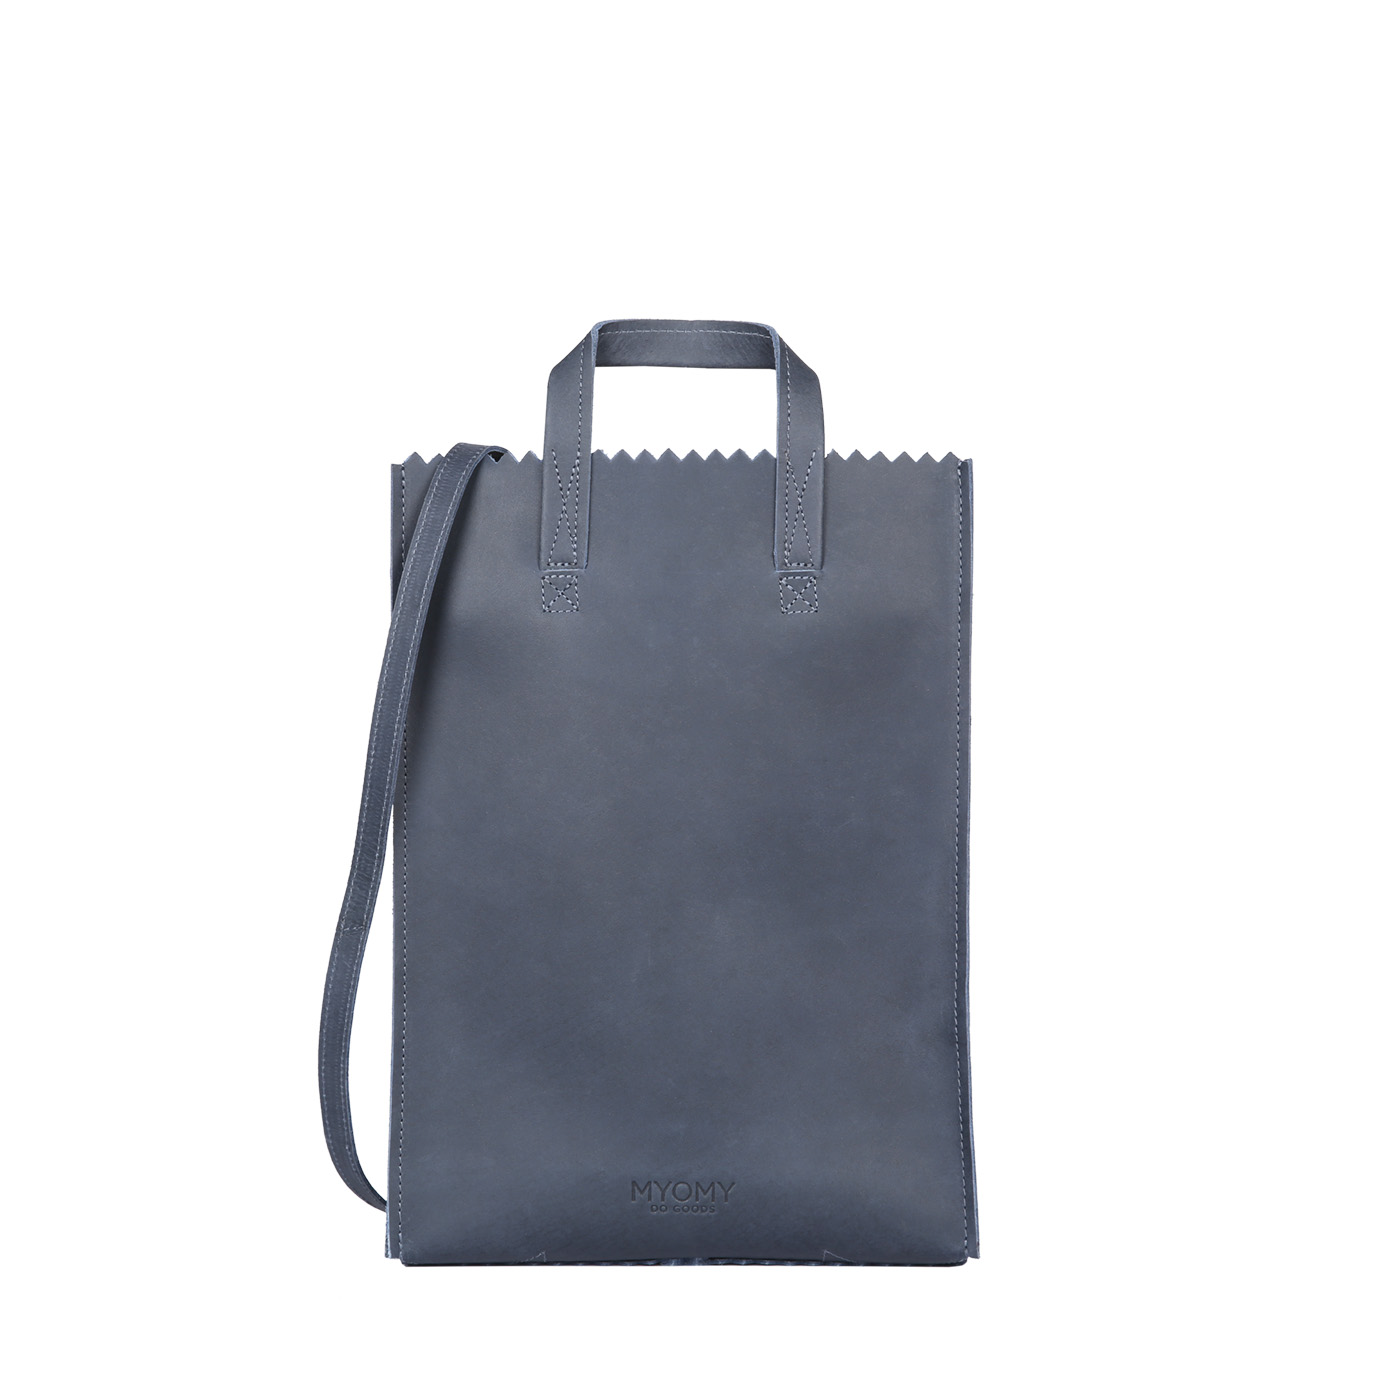 MY PAPER BAG Handy short handle - hunter navy blue